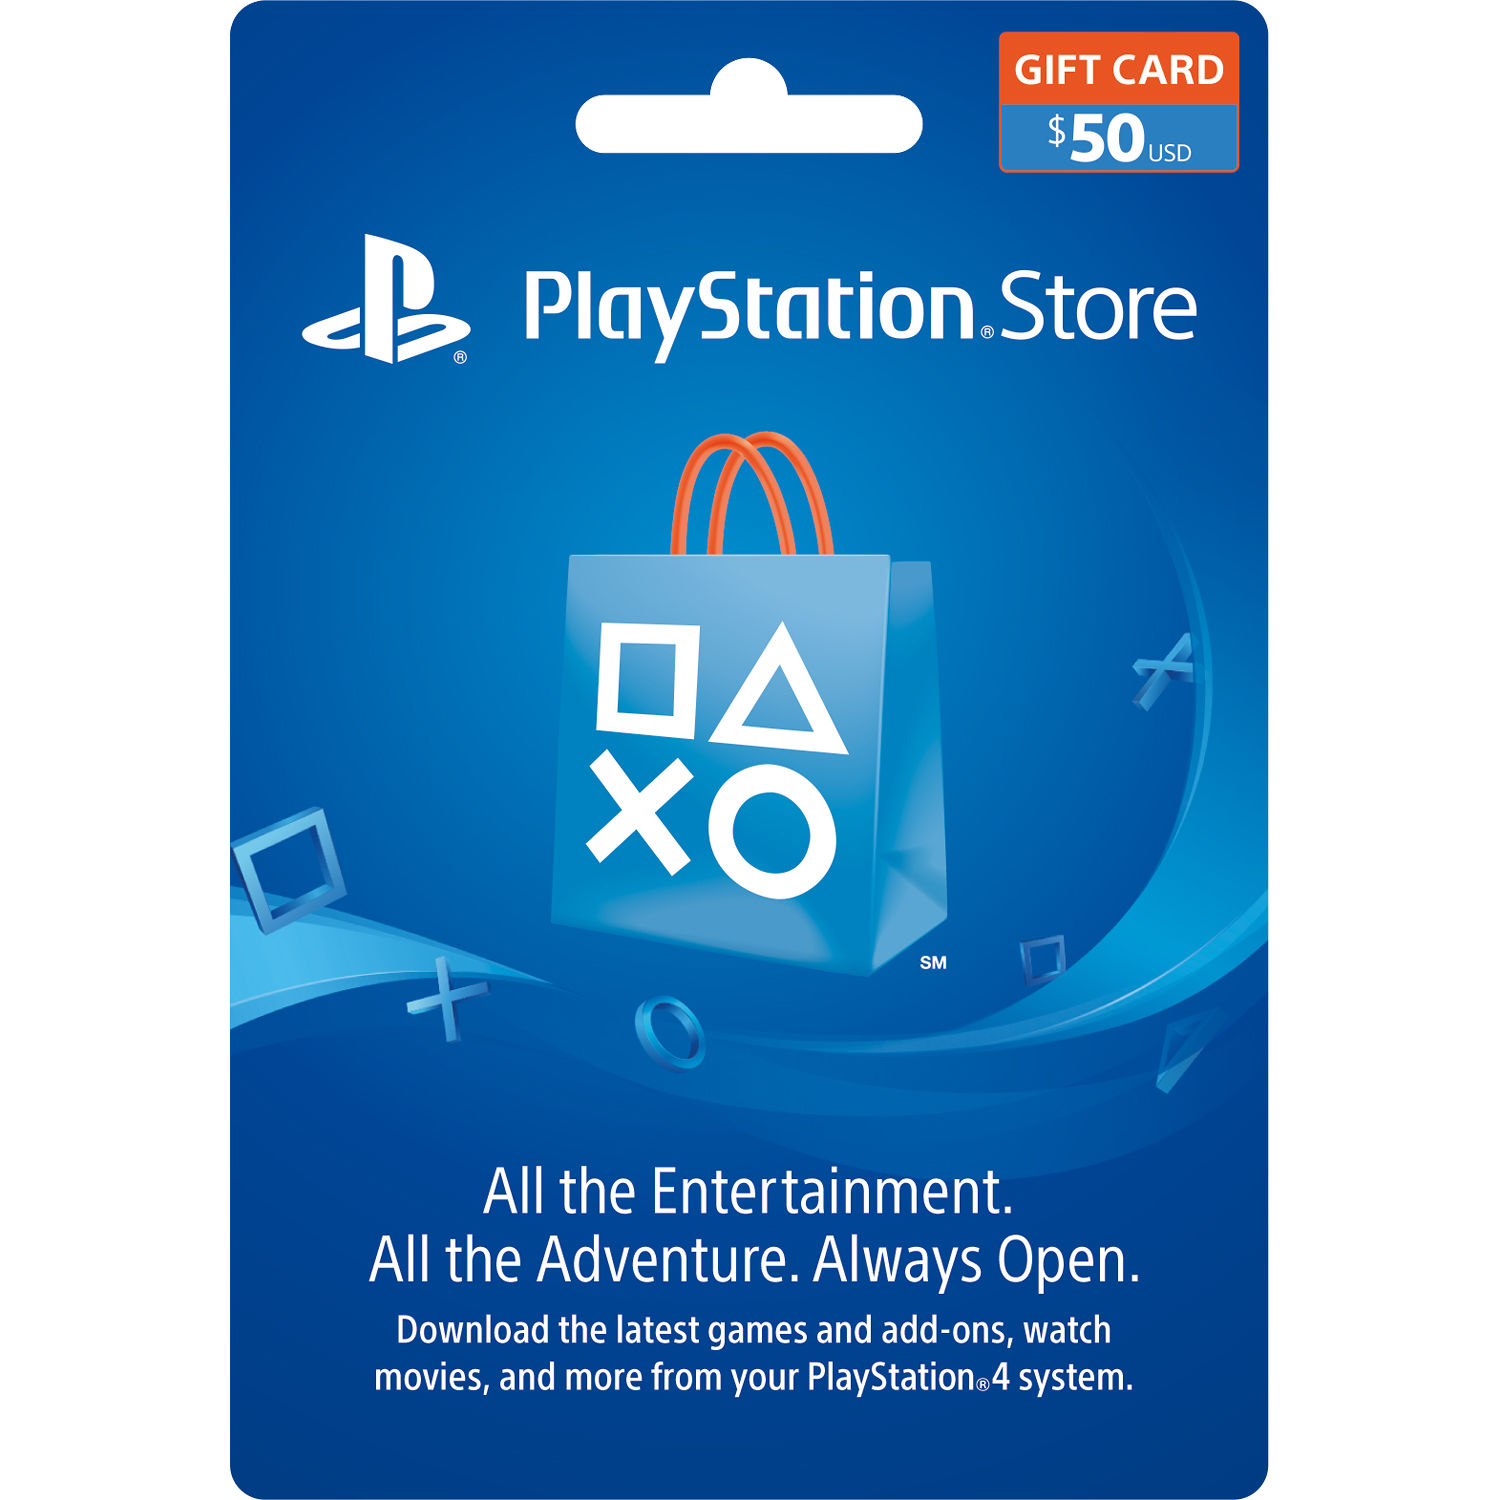 psn store gift card photo - 1